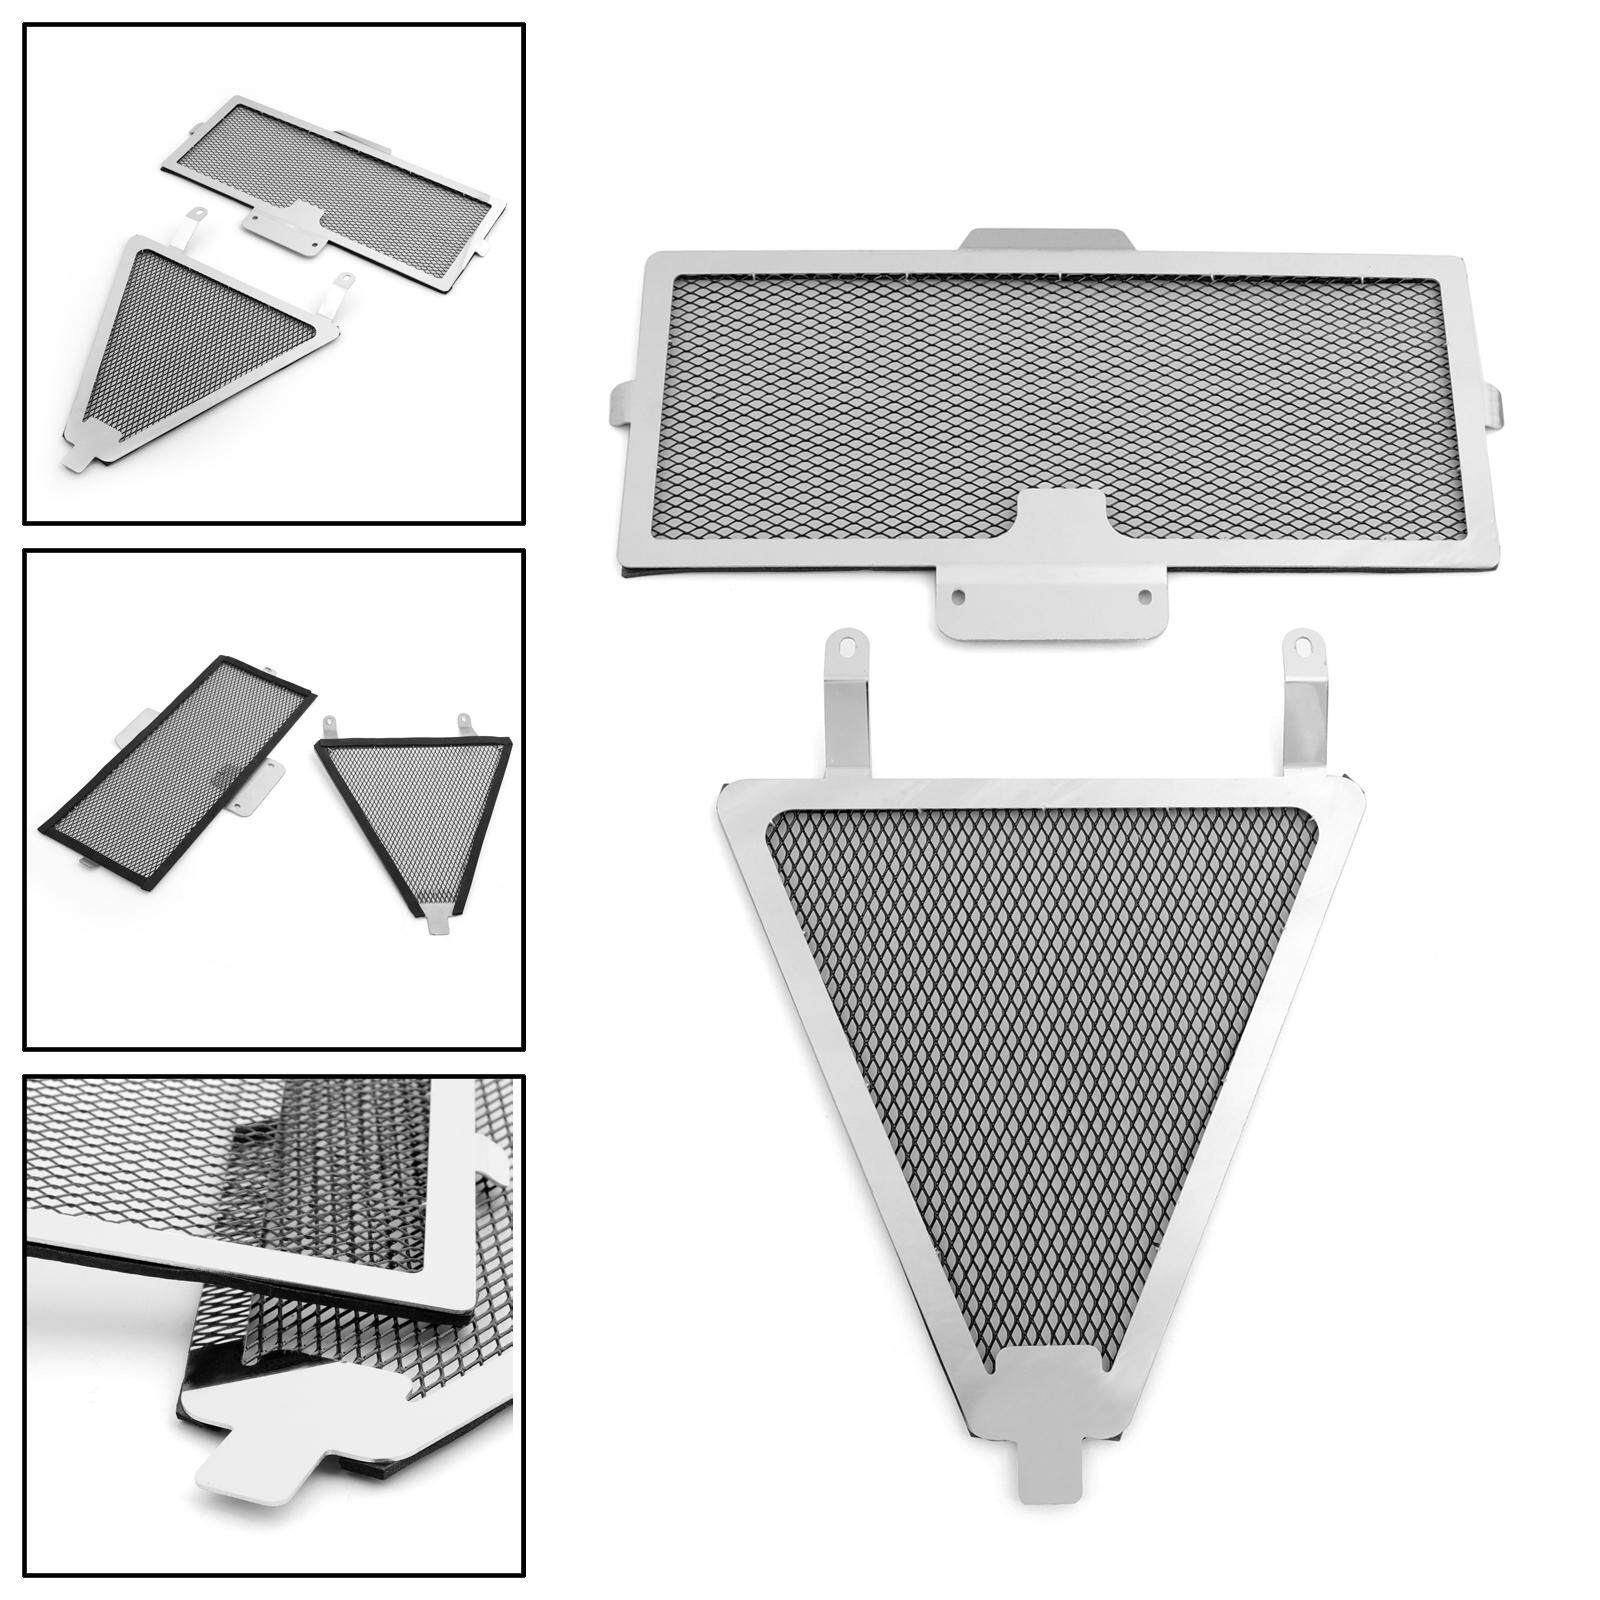 Areyourshop Black Radiator Guard Cover Oil Cooler For Ducati 1299 1199 959 899 Panigale By Areyourshop.